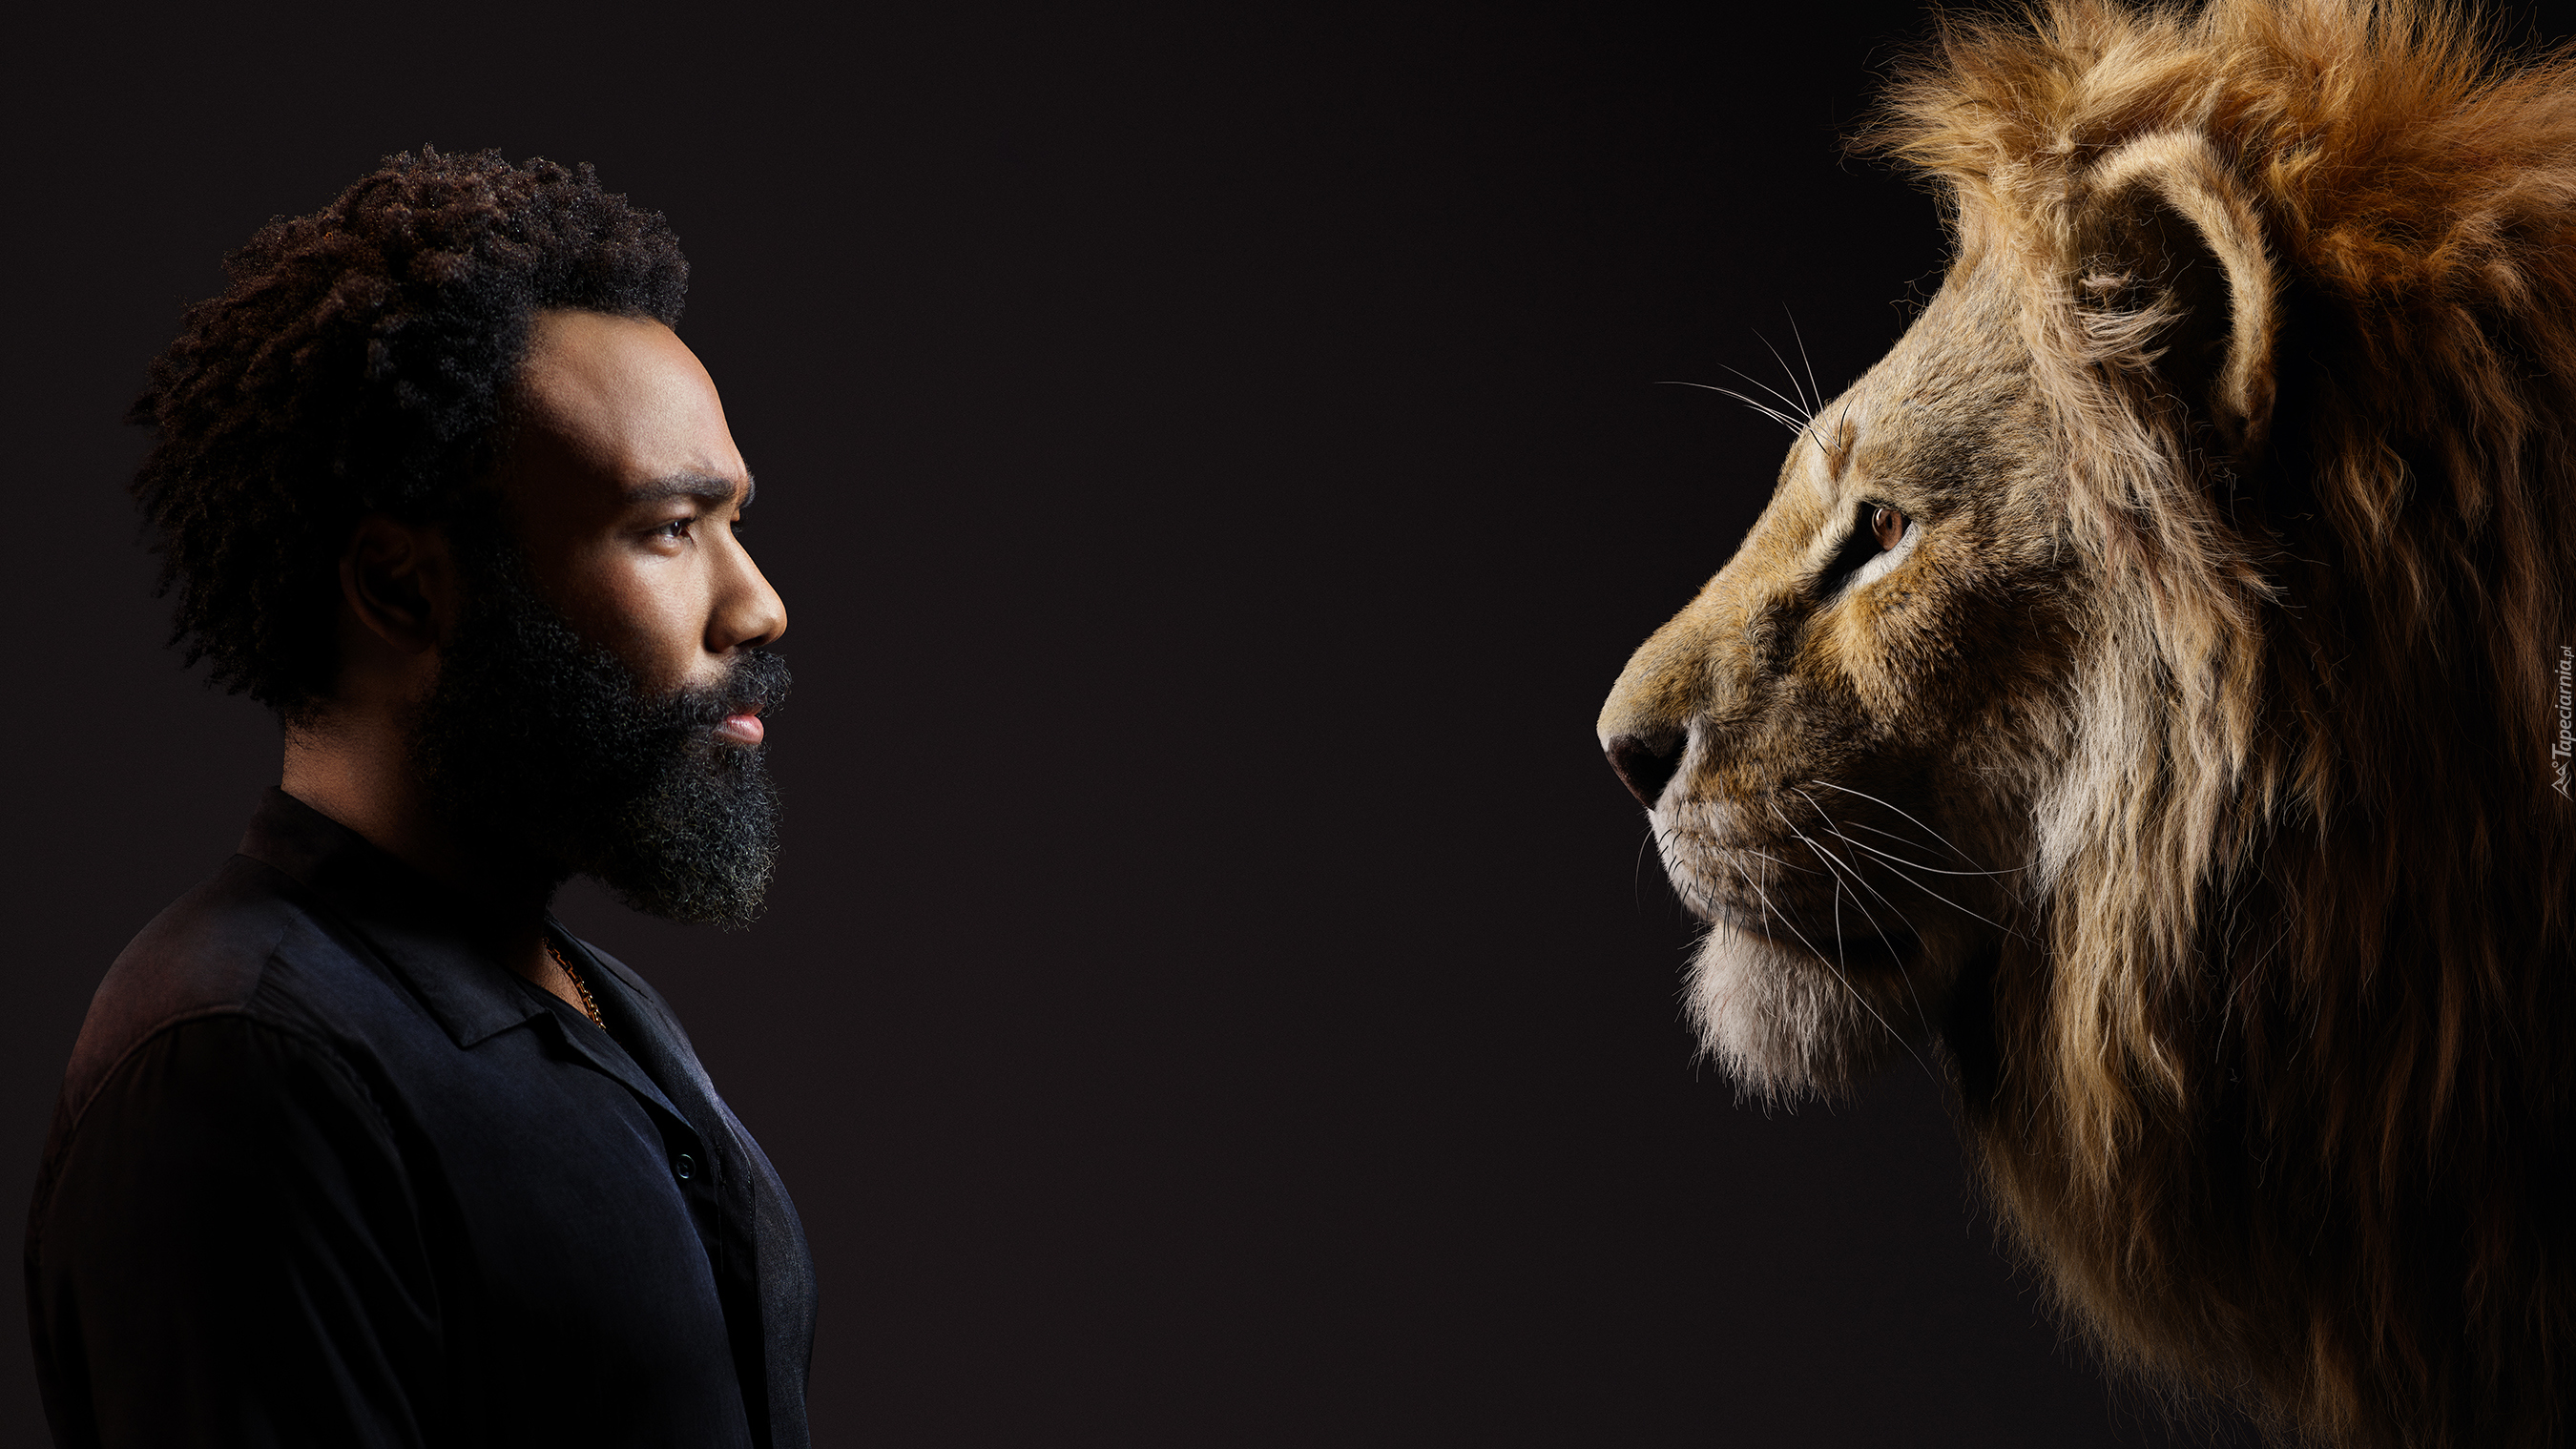 Film, Król Lew, The Lion King, Aktor, Donald Glover, Lew